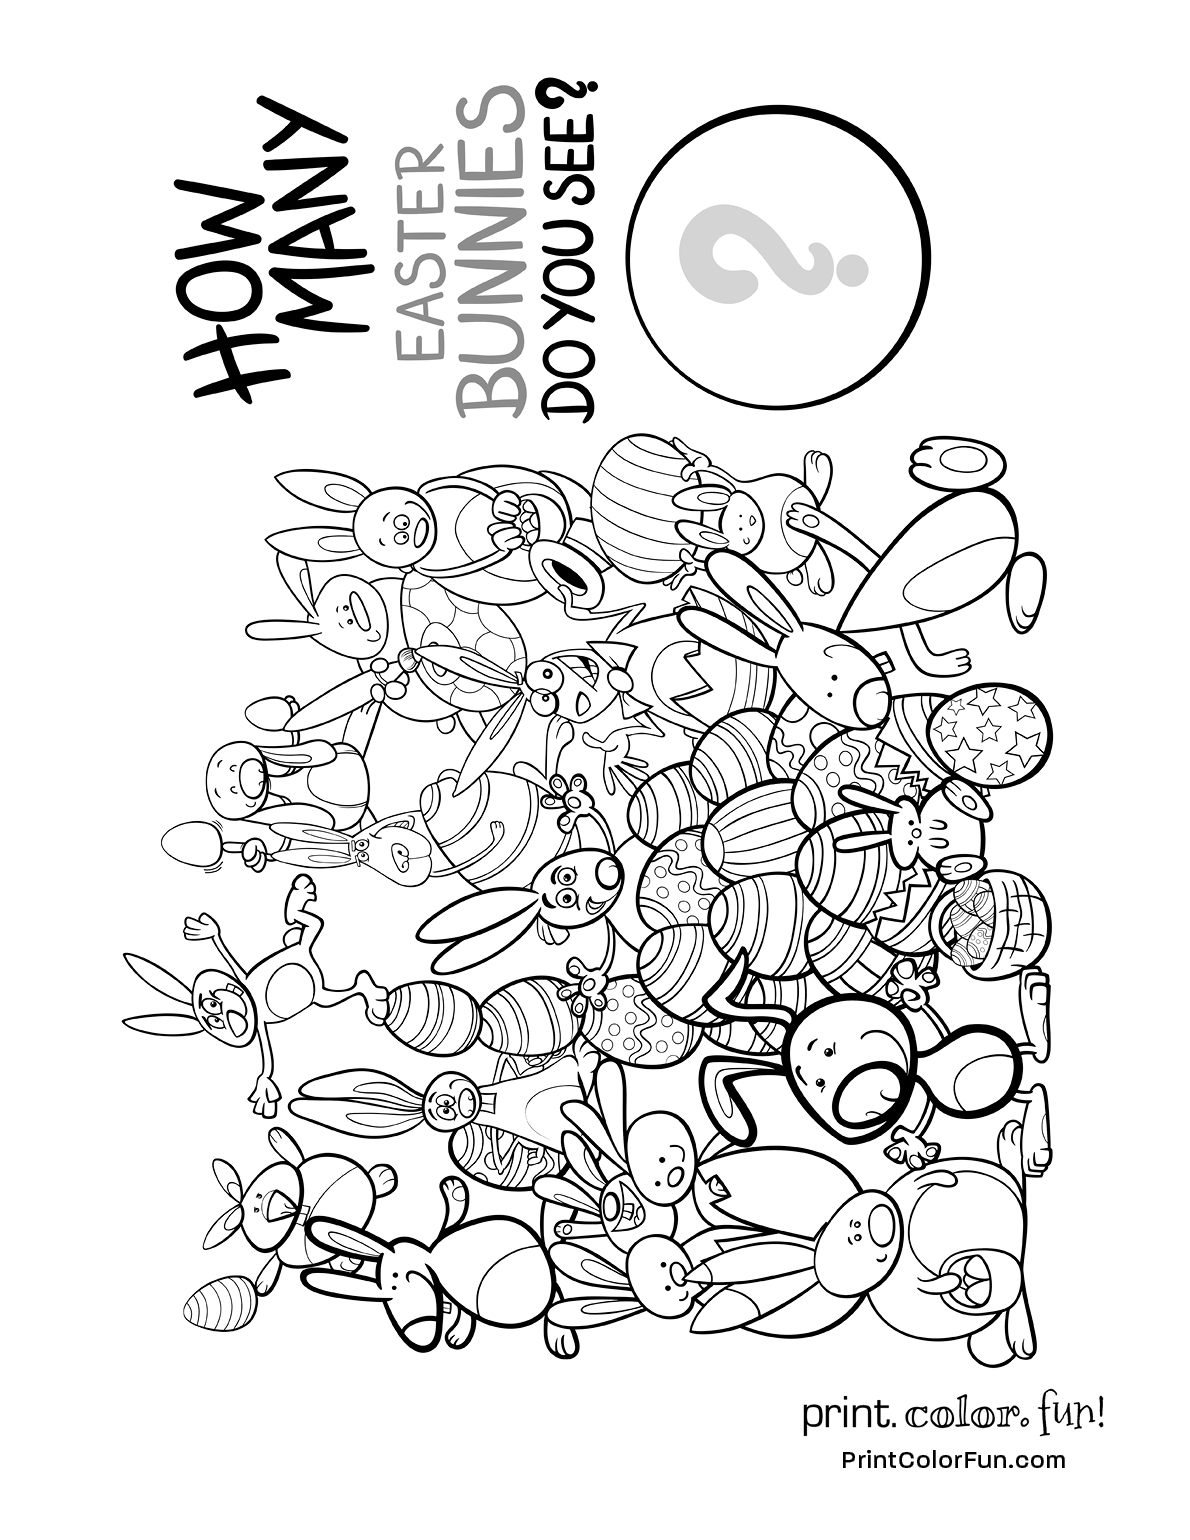 How Many Easter Bunnies Do You See - Puzzle Coloring Page - Print - Printable Bunny Puzzle